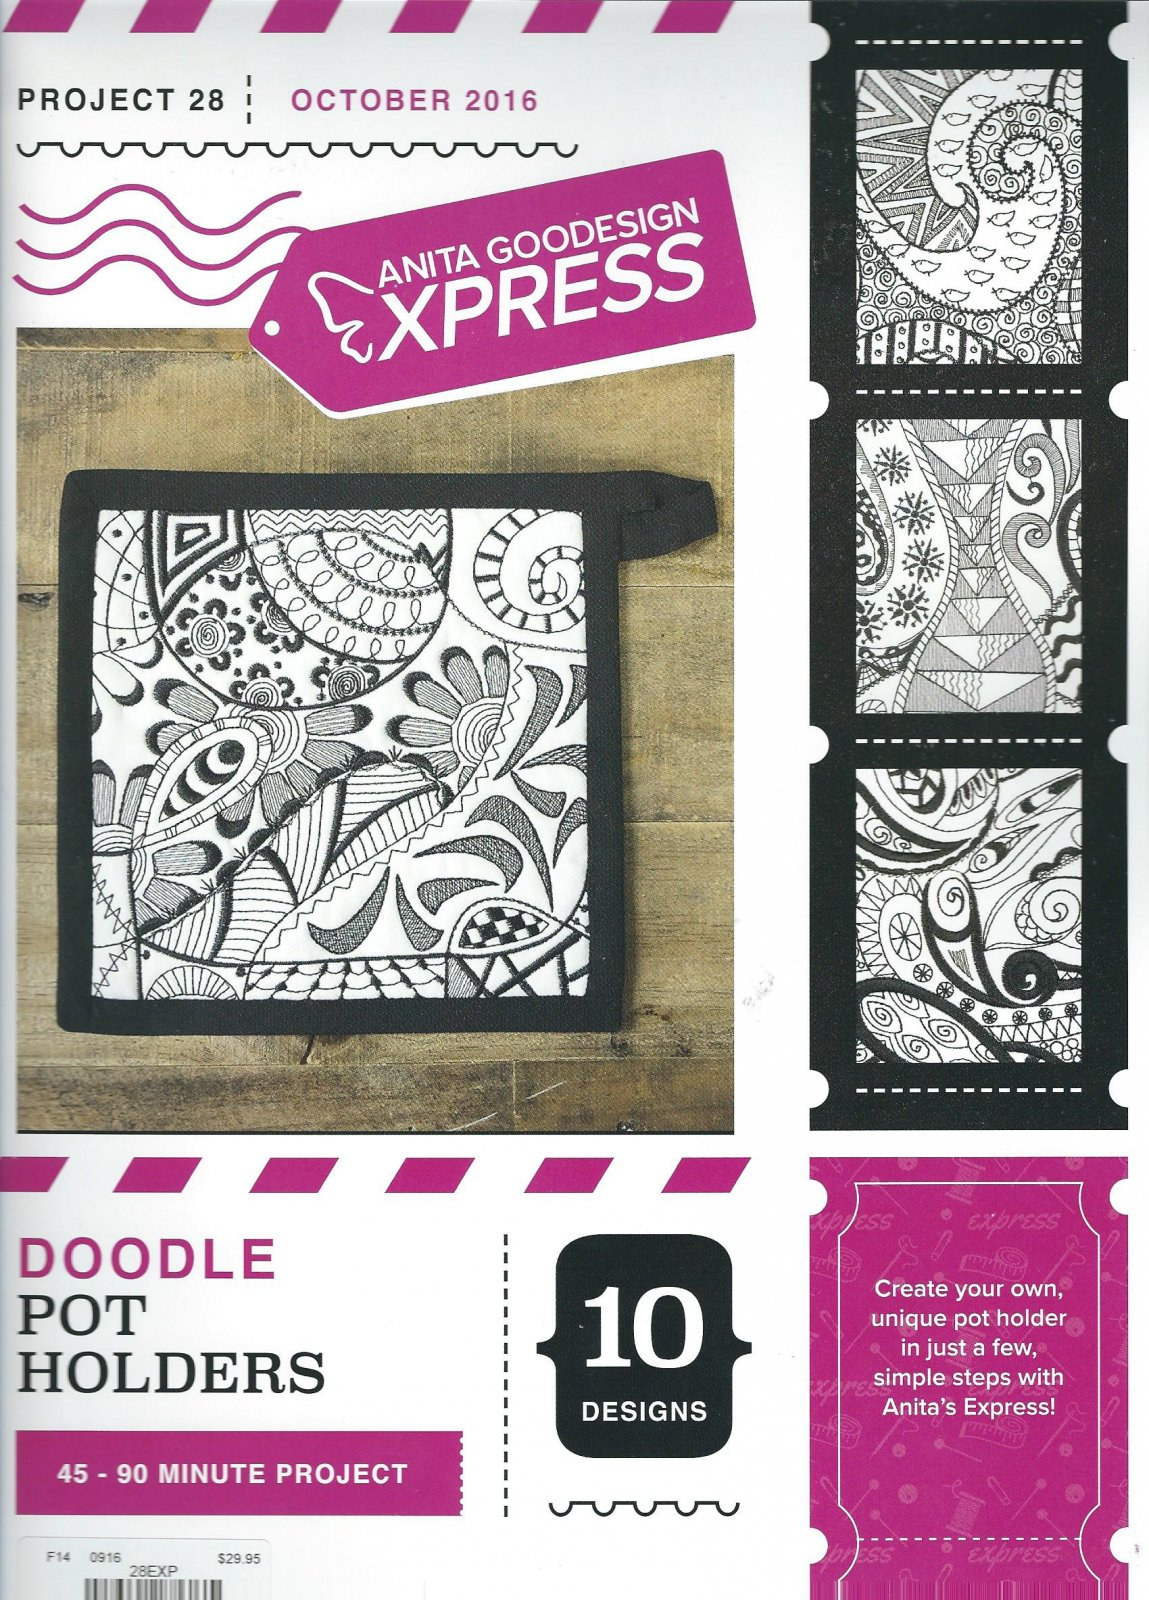 Anita Goodesign Express Doodle Pot Holders